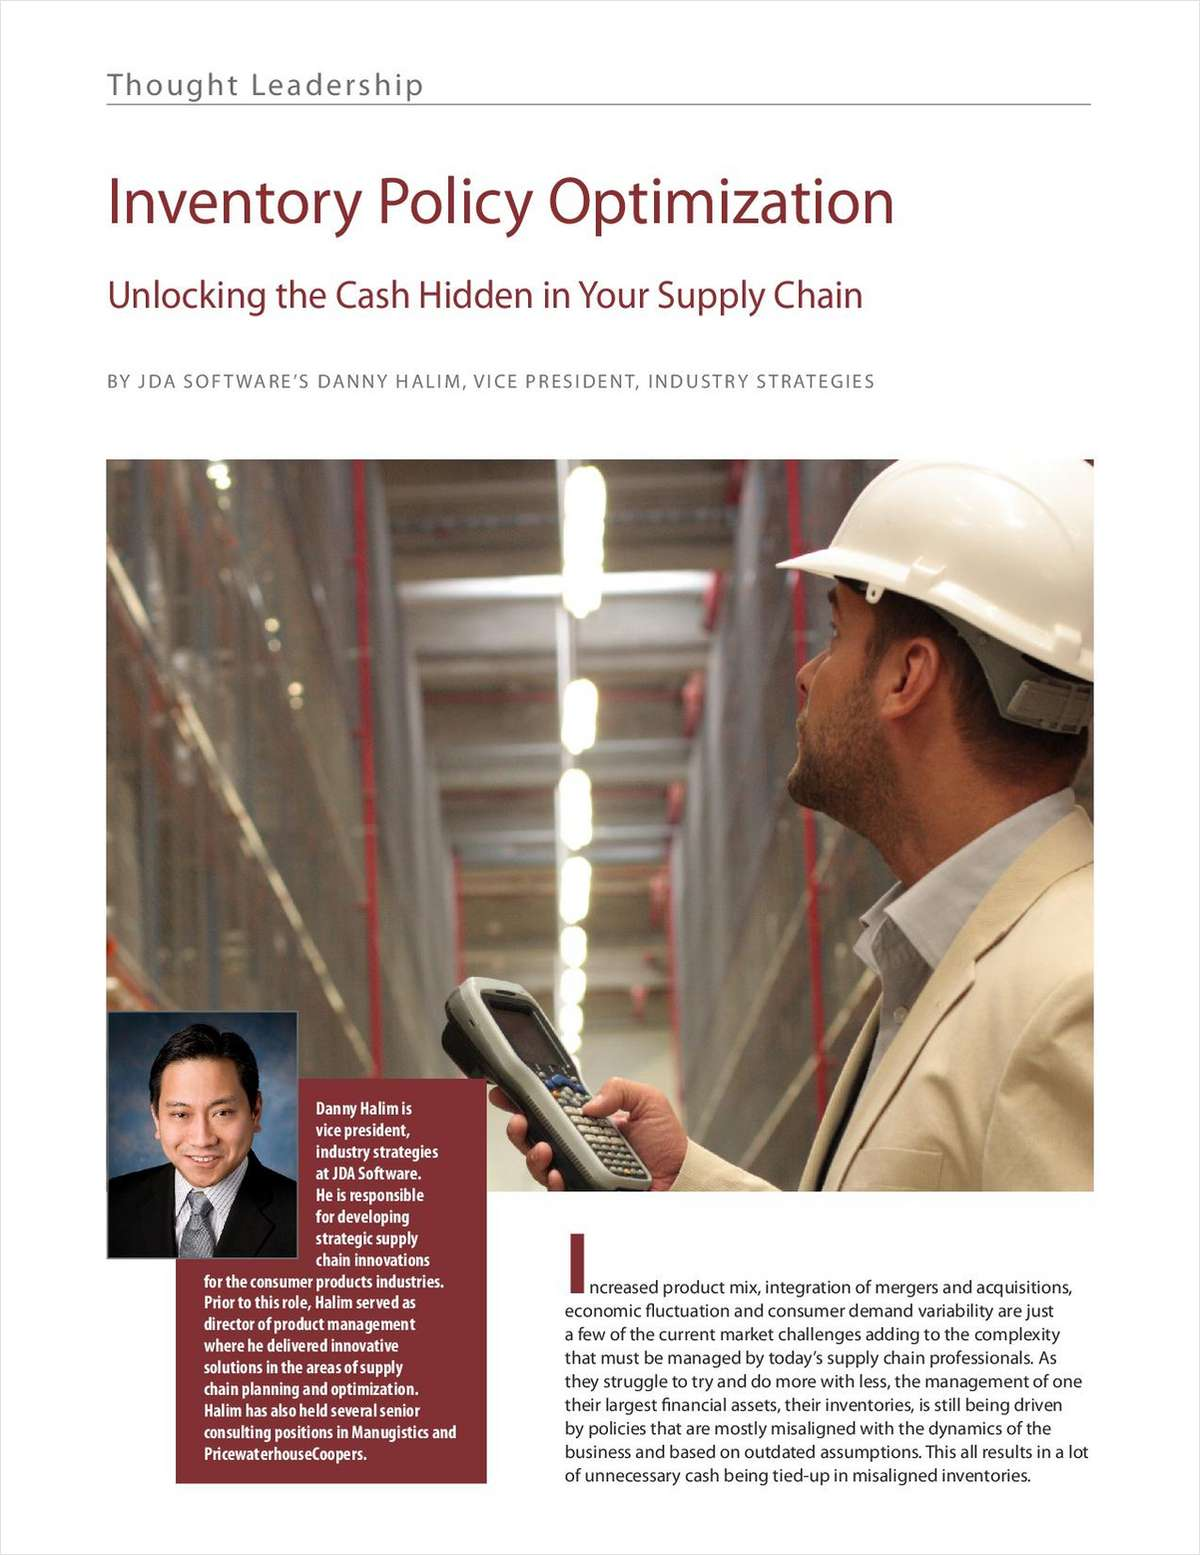 Unlock the Cash in Your Supply Chain with Inventory Optimization